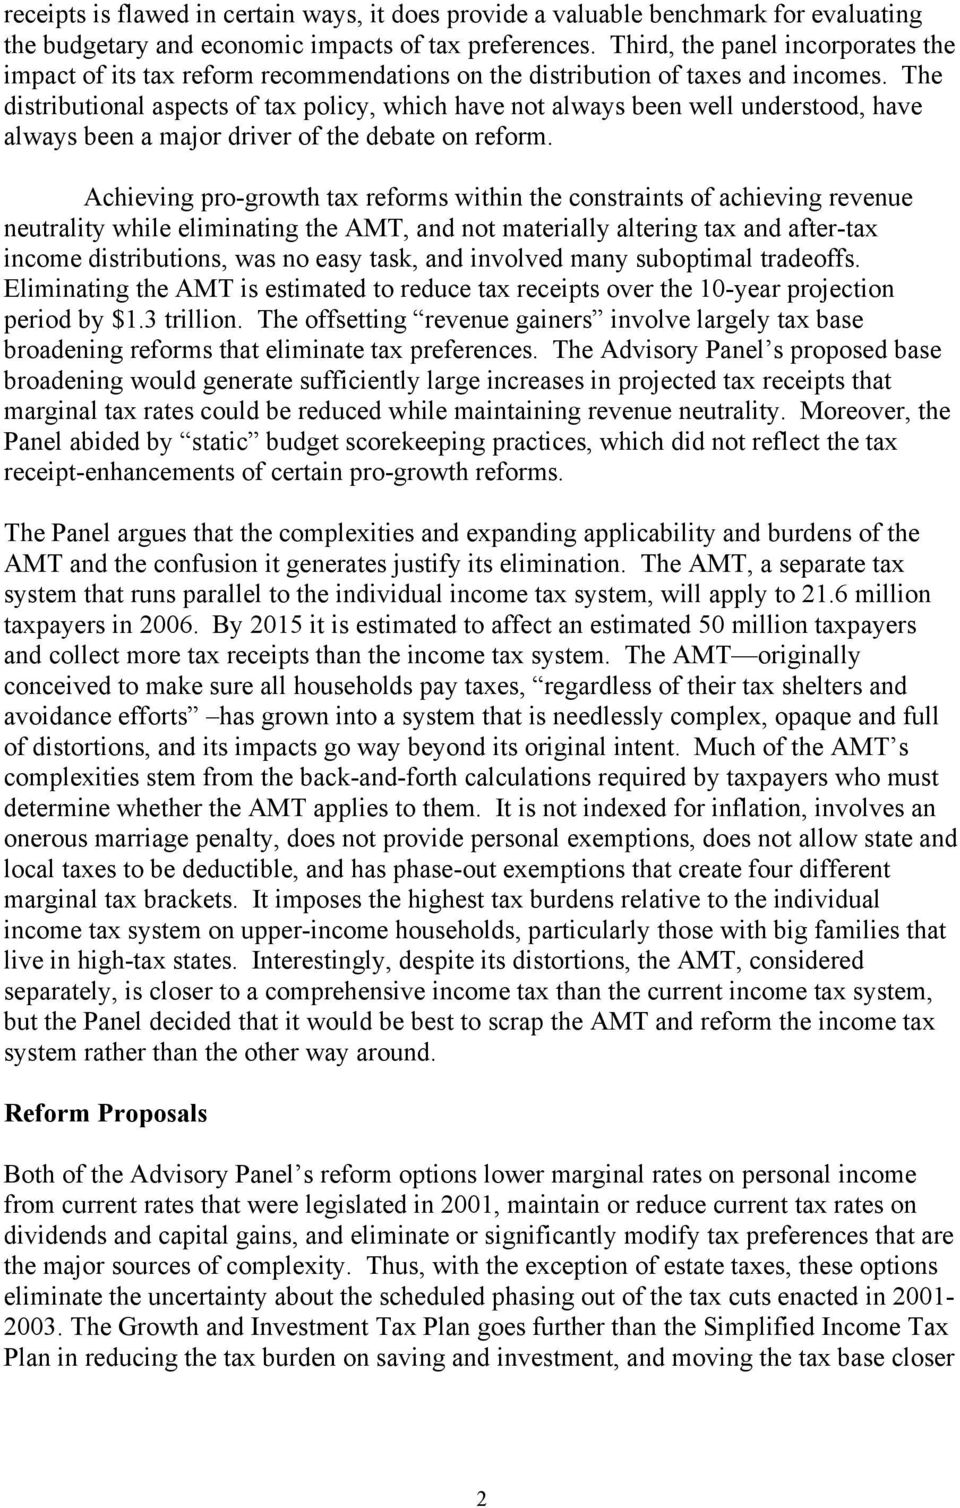 The distributional aspects of tax policy, which have not always been well understood, have always been a major driver of the debate on reform.